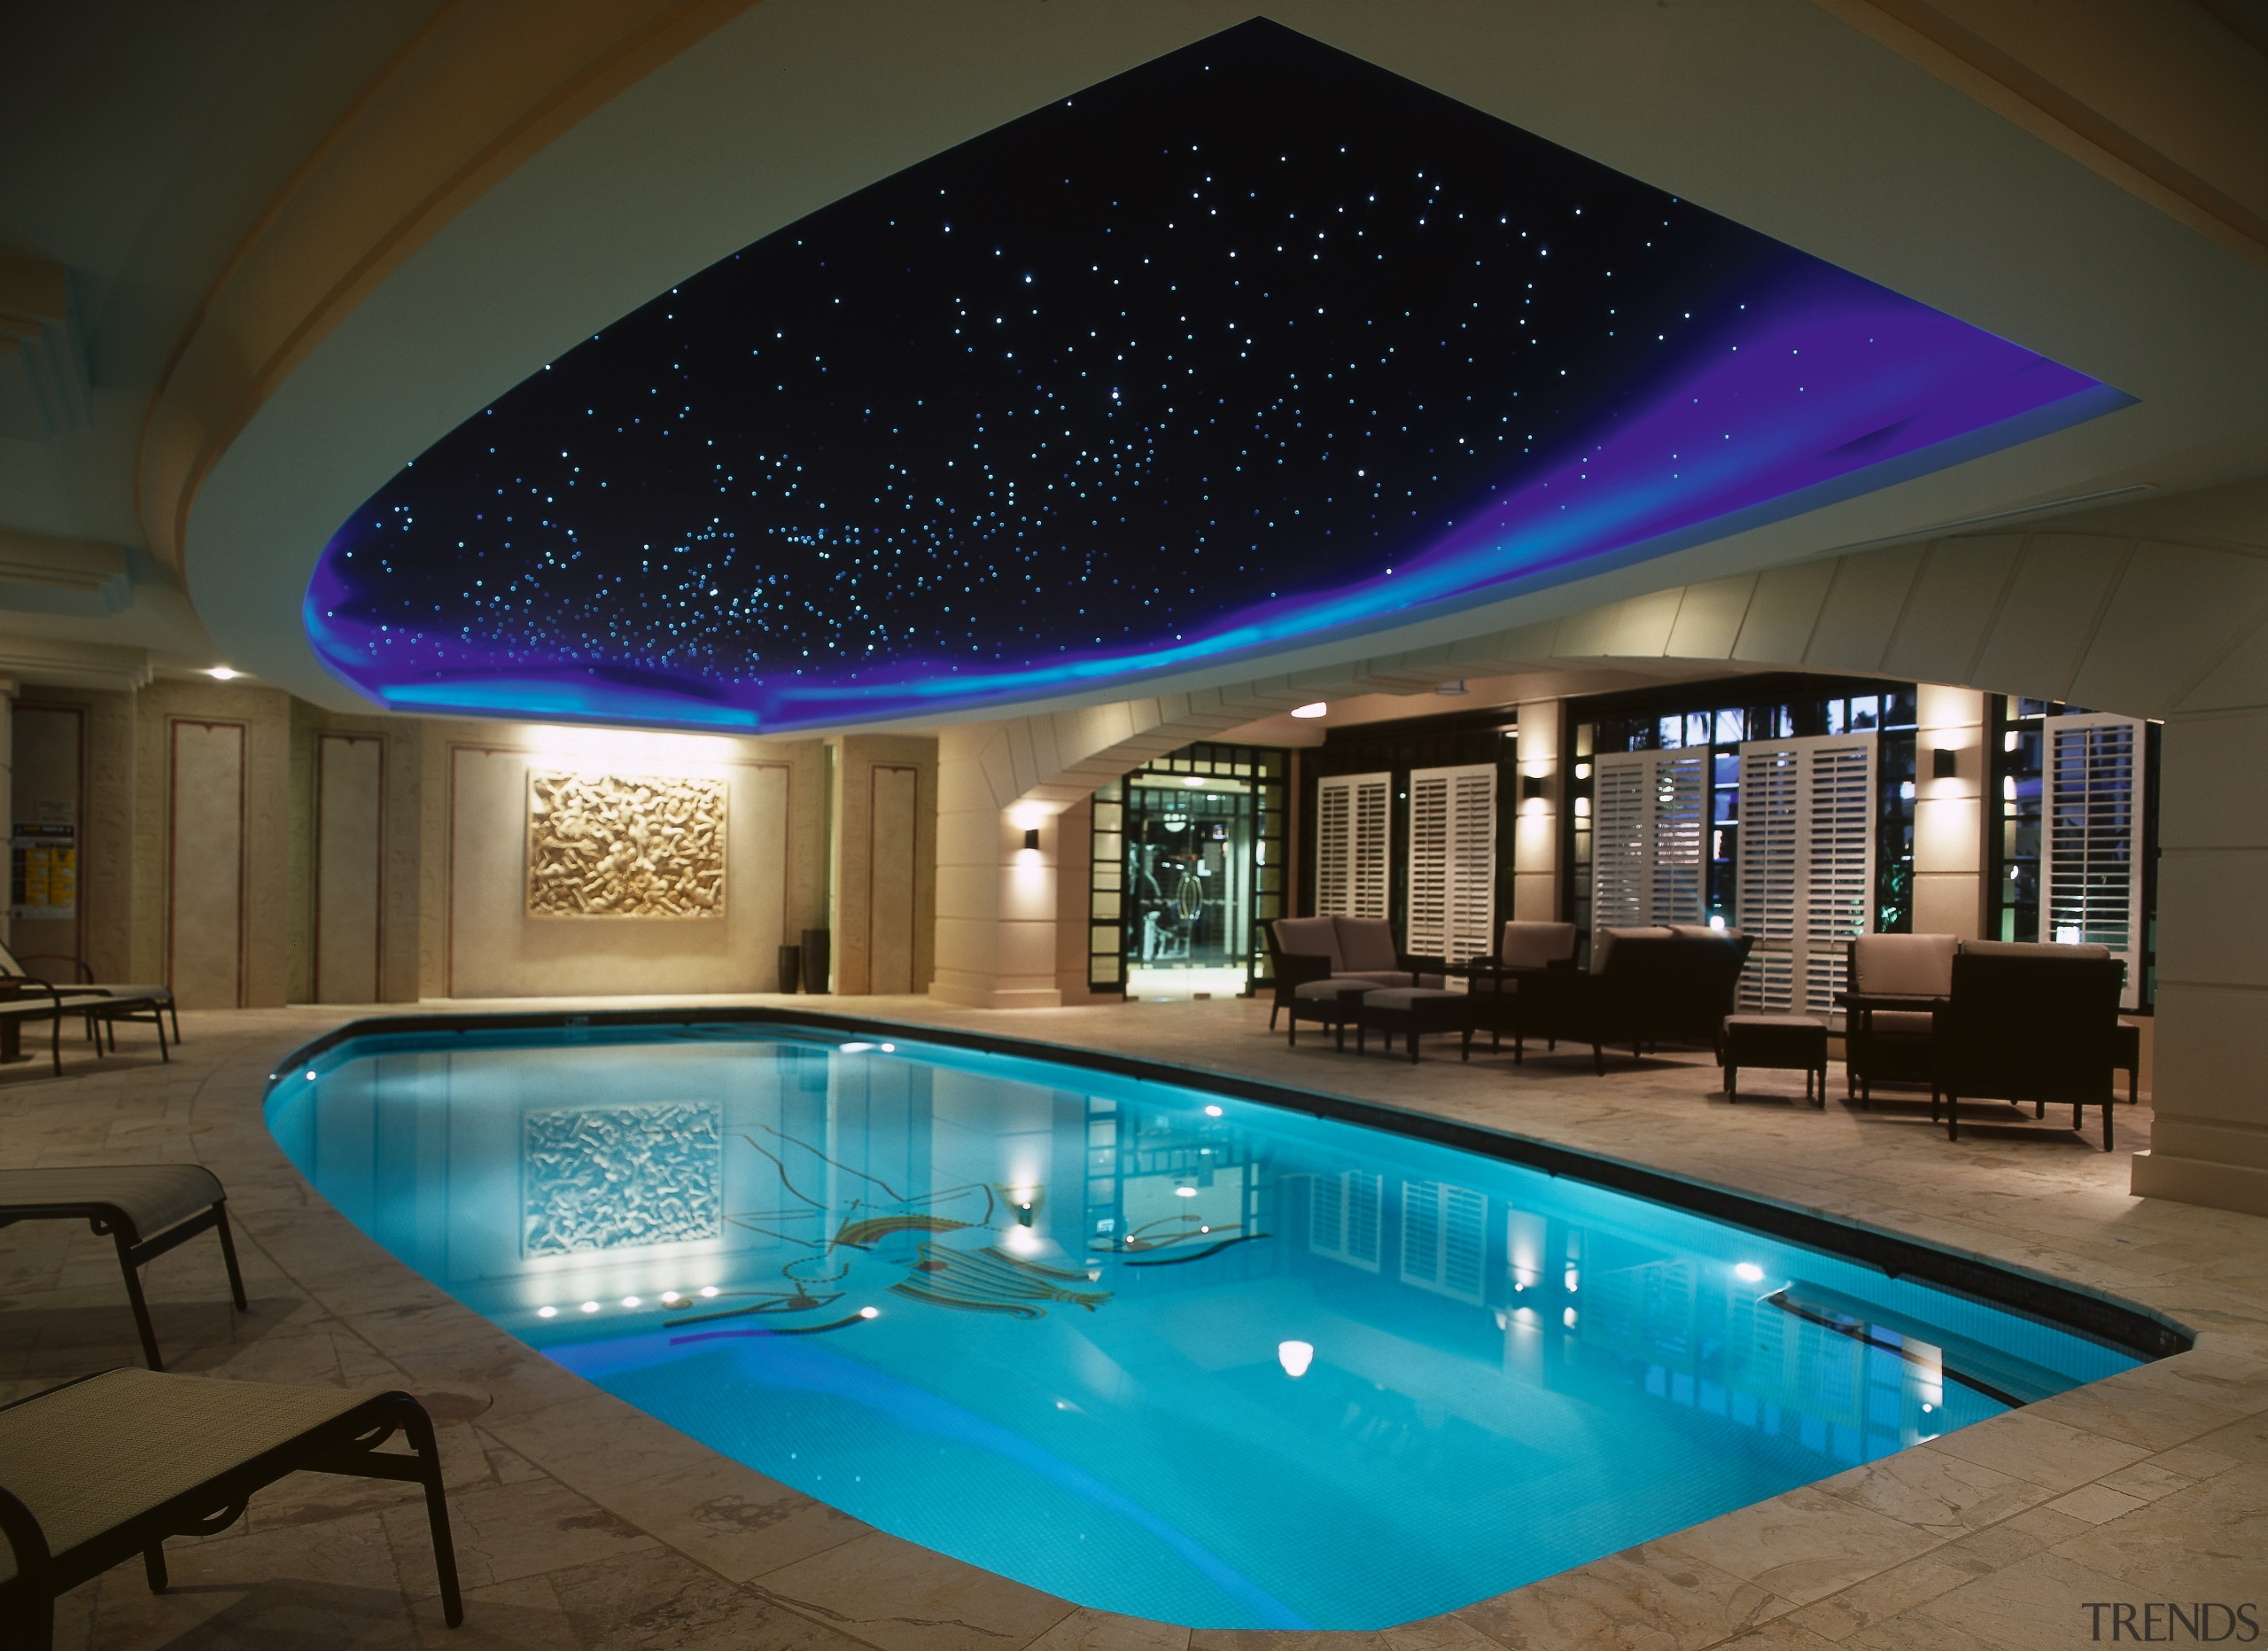 interior view of indoor heated pool in the ceiling, daylighting, estate, home, interior design, light, lighting, property, real estate, swimming pool, brown, black